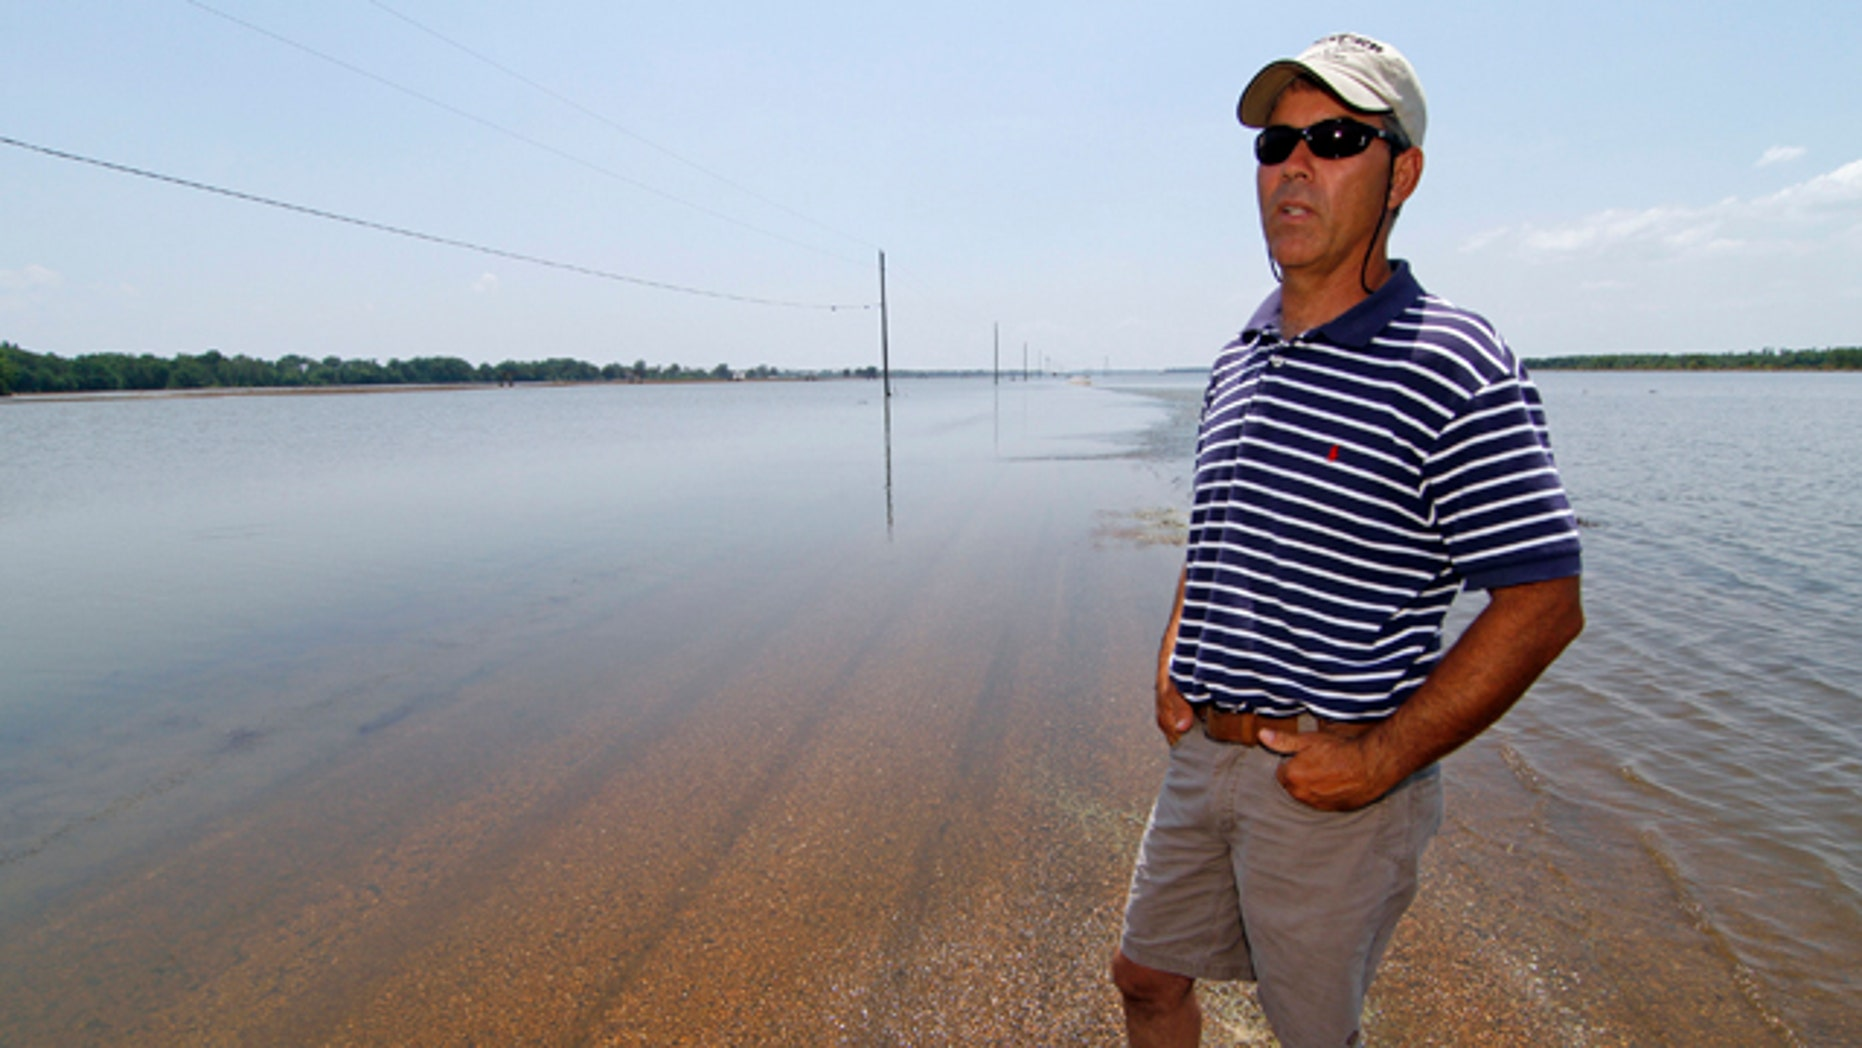 June 1: Farmer Brett Robinson stands on the road between his flooded farm fields near his house outside of Yazoo City, Miss.